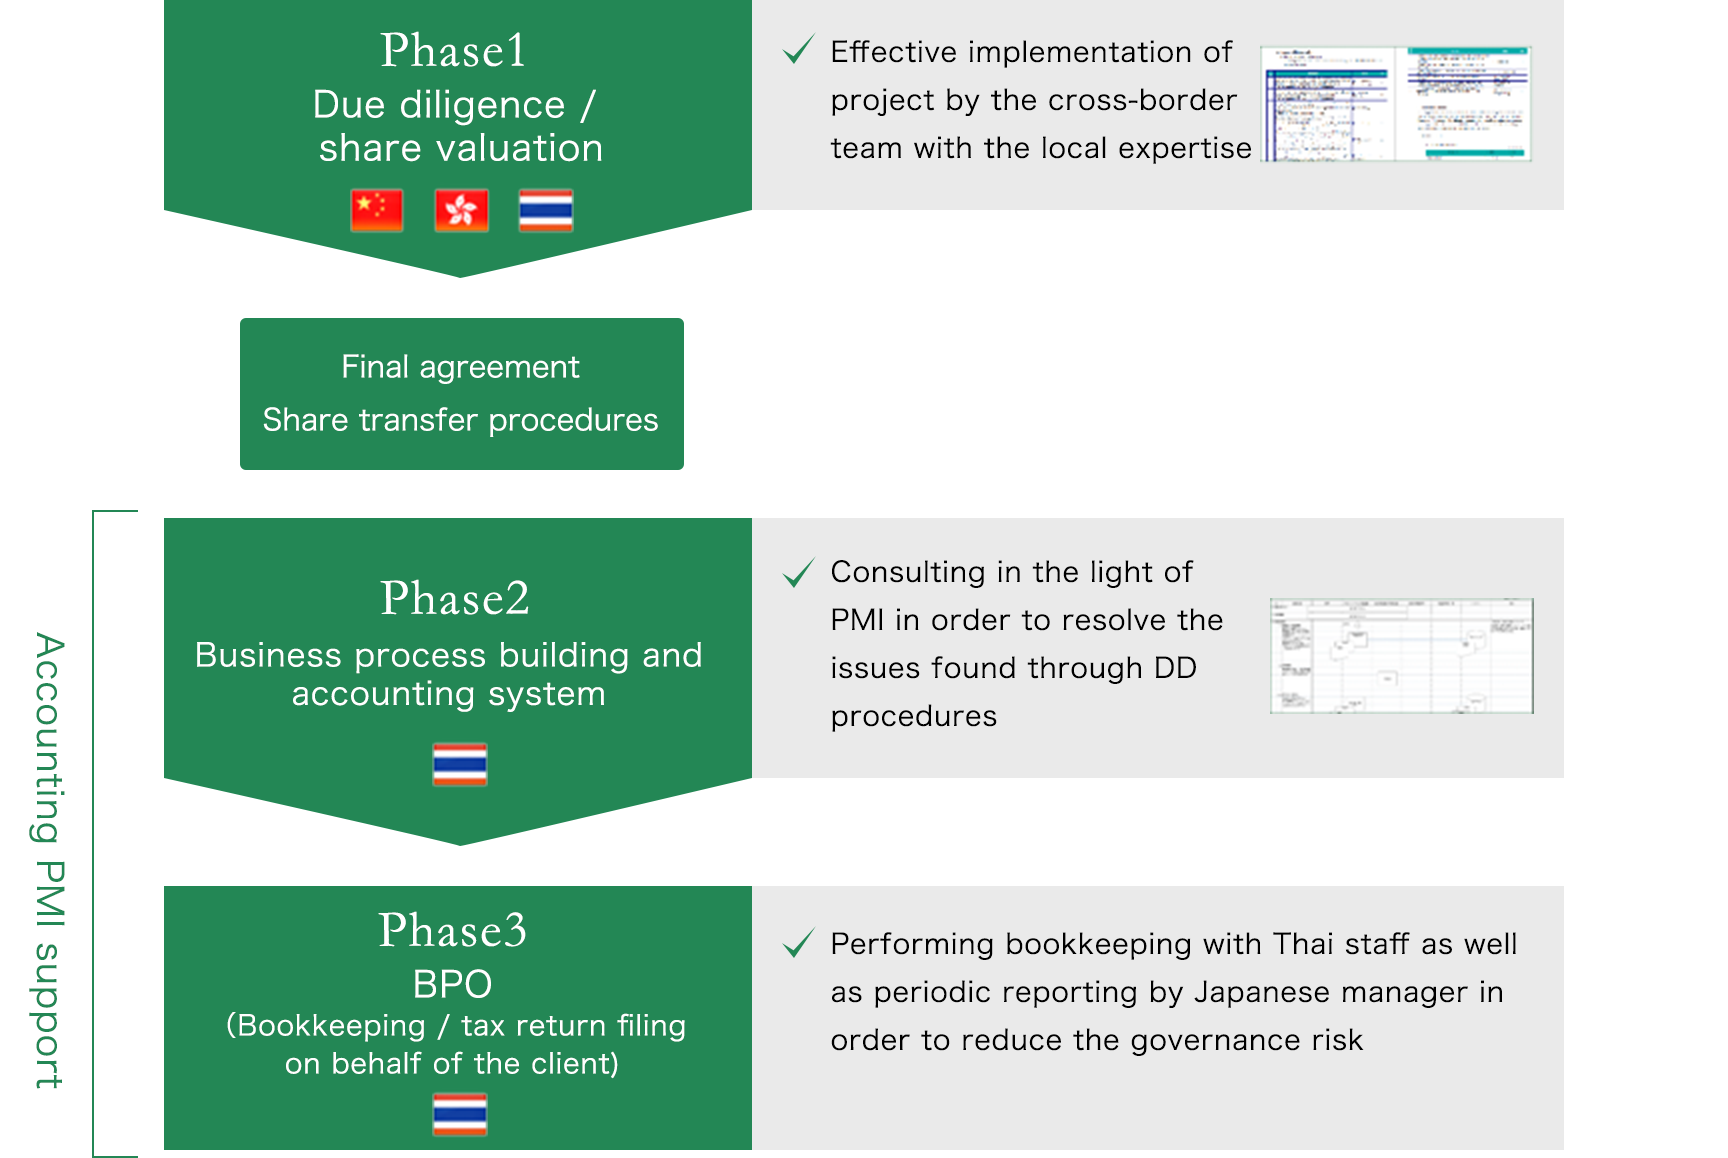 Phase1 Due diligence / share valuation Effective implementation of project by the cross-border team with the local expertise Final agreement, Share transfer procedures Accounting PMI support Phase2 Business process building and accounting system data preparation Consulting in the light of PMI in order to resolve the issues found through DD procedures Phase 3 BPO (Bookkeeping / tax return filing on behalf of the client) Performing bookkeeping with Thai staff as well as periodic reporting by Japanese manager in order to reduce the governance risk